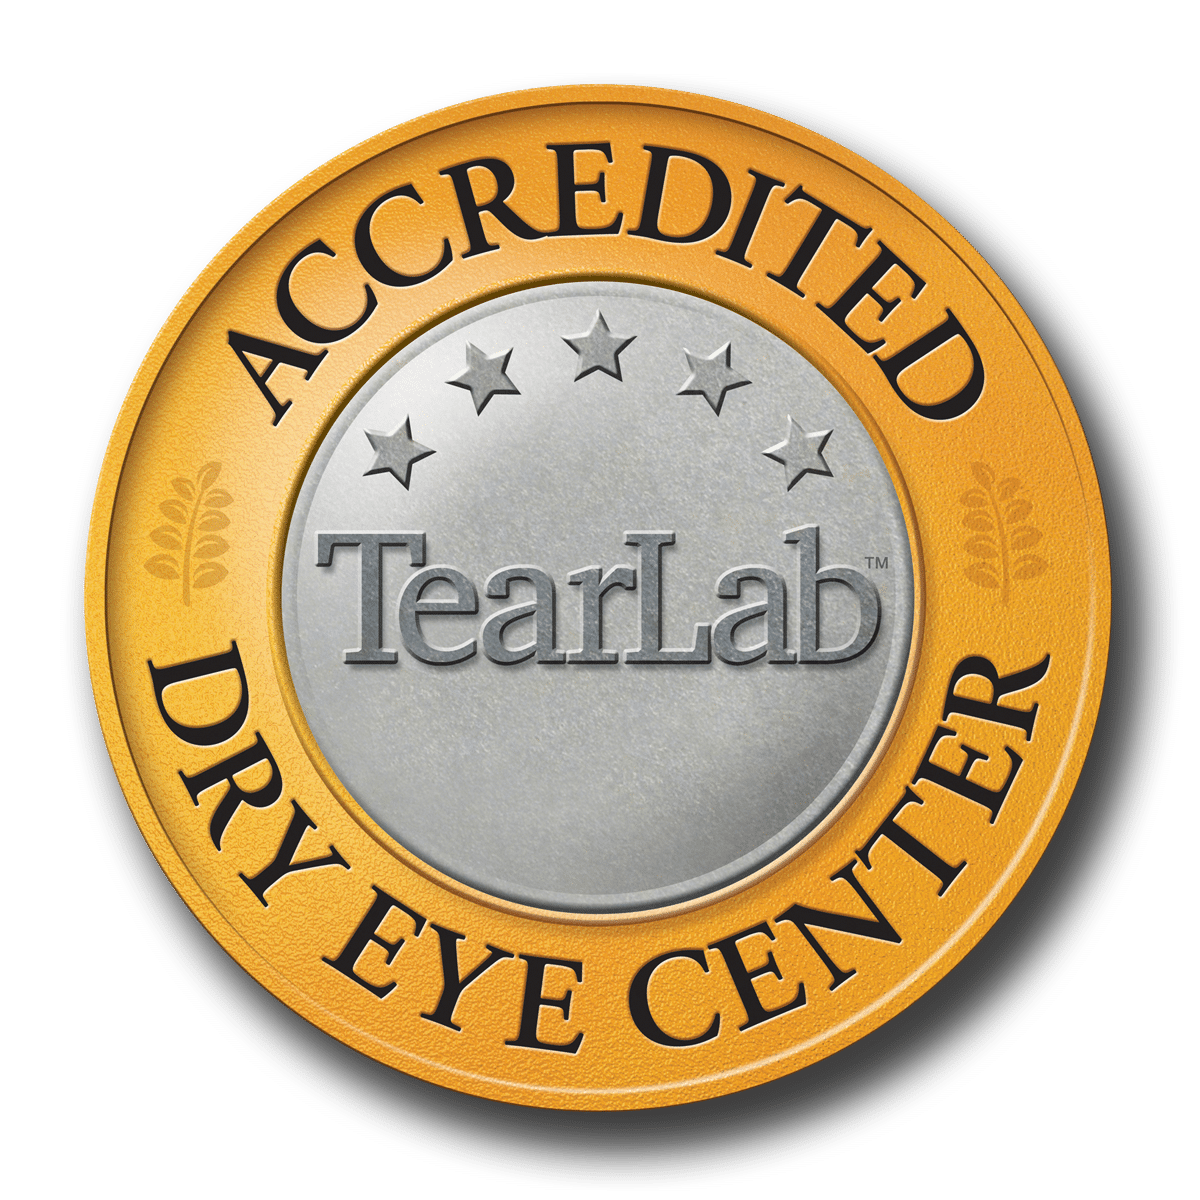 Dry Eye Center Seal